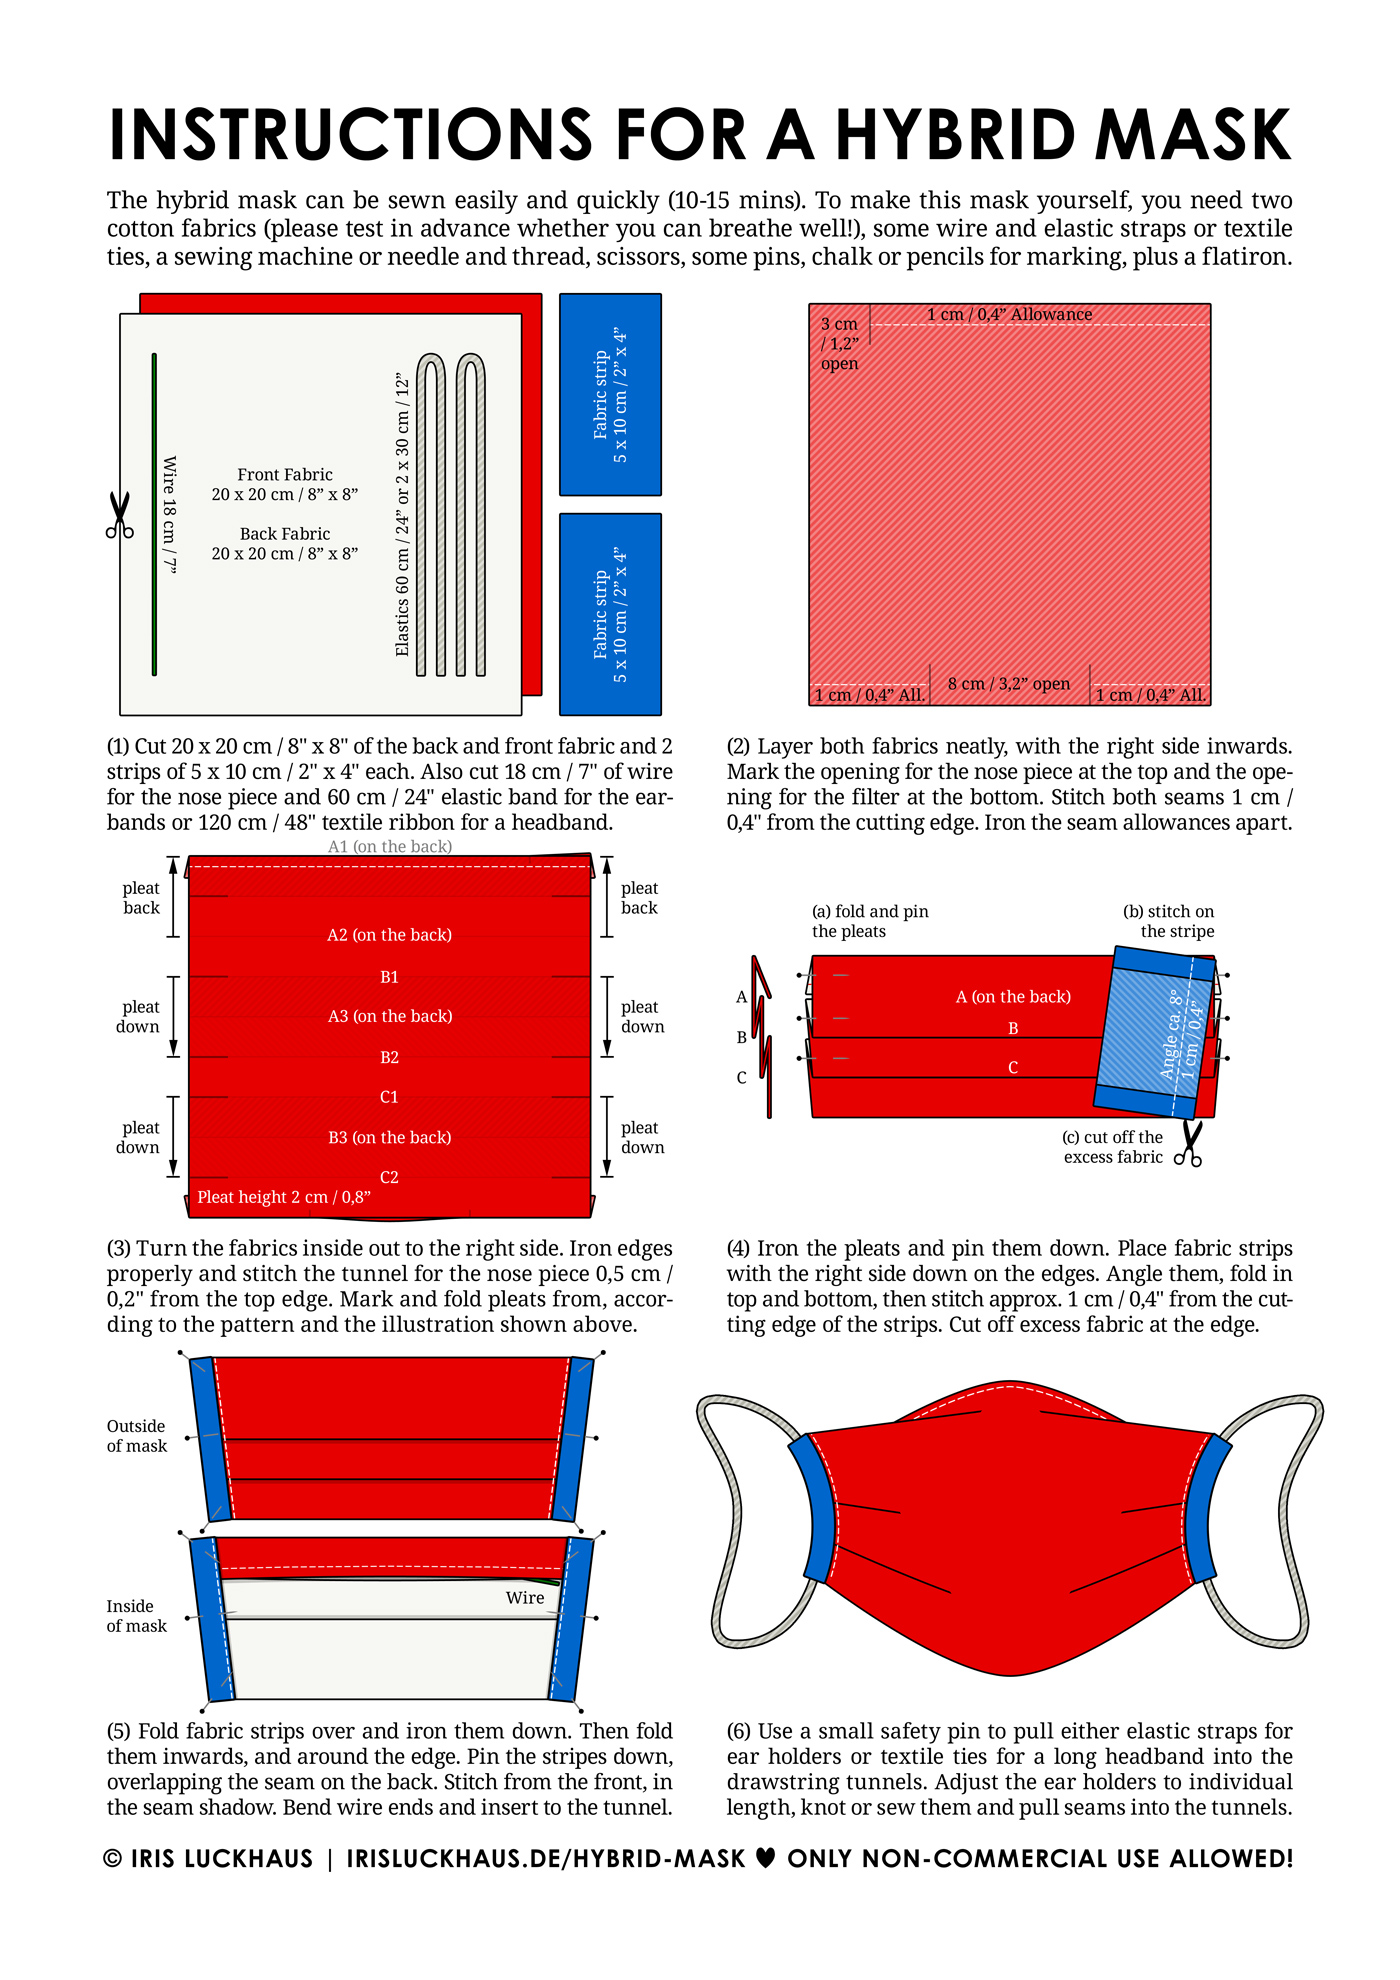 DIY Instructions, Pattern and Template for Sewing a Hybrid Cloth Mask or Face Mask by Iris Luckhaus